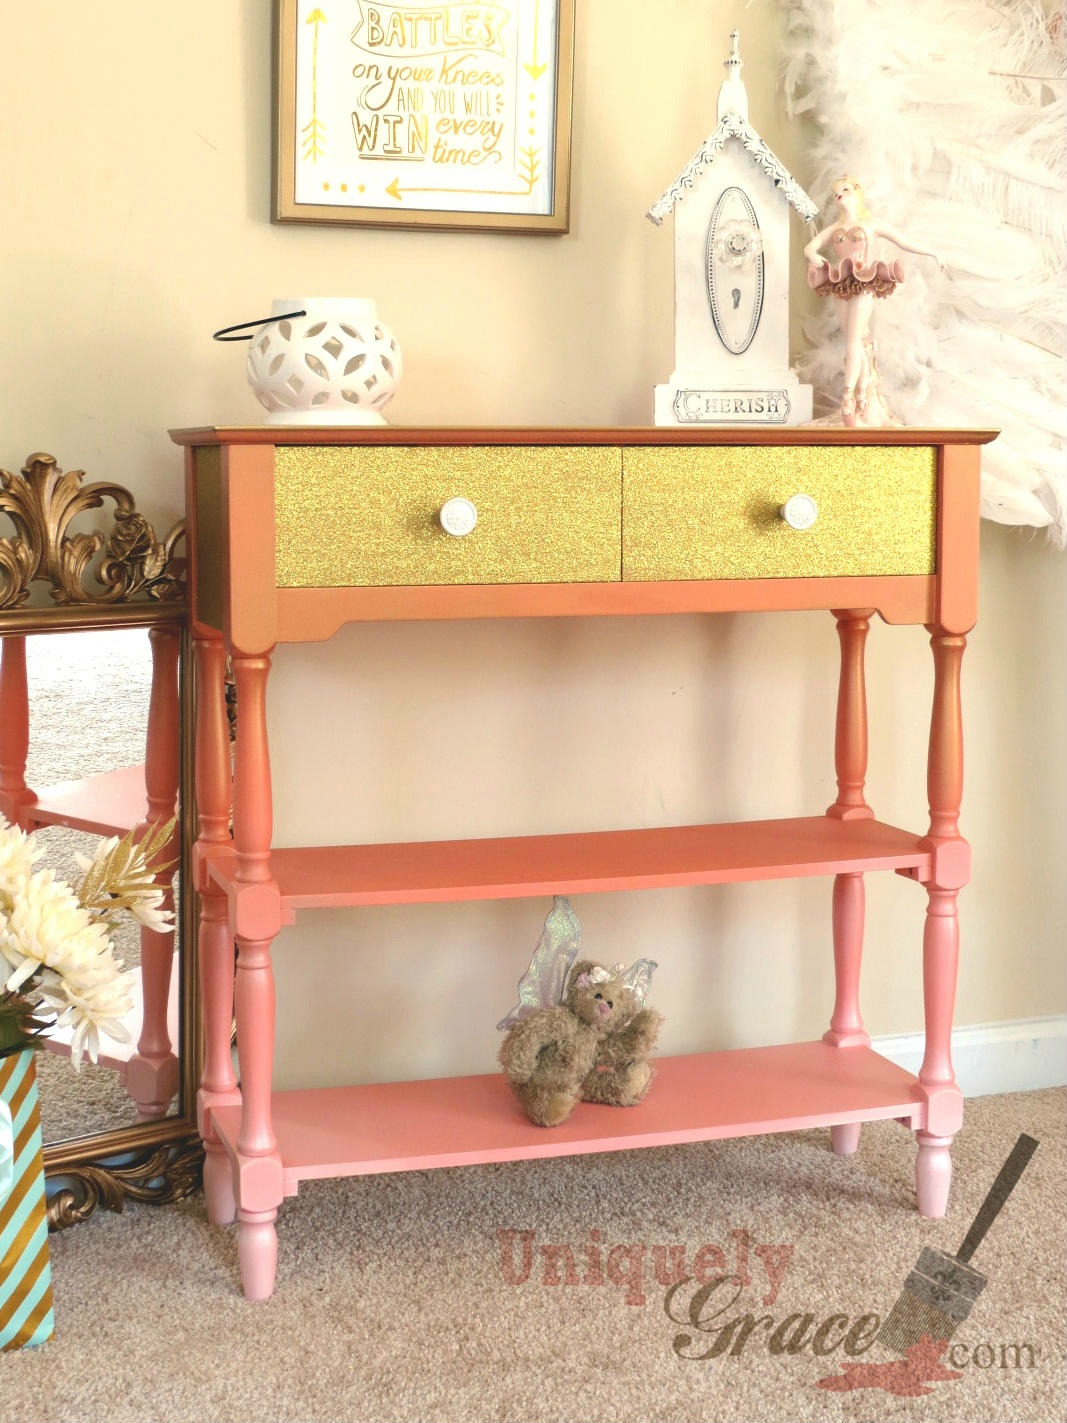 Glamorous Coral and Gold Table Makeover - by Uniquely Grace